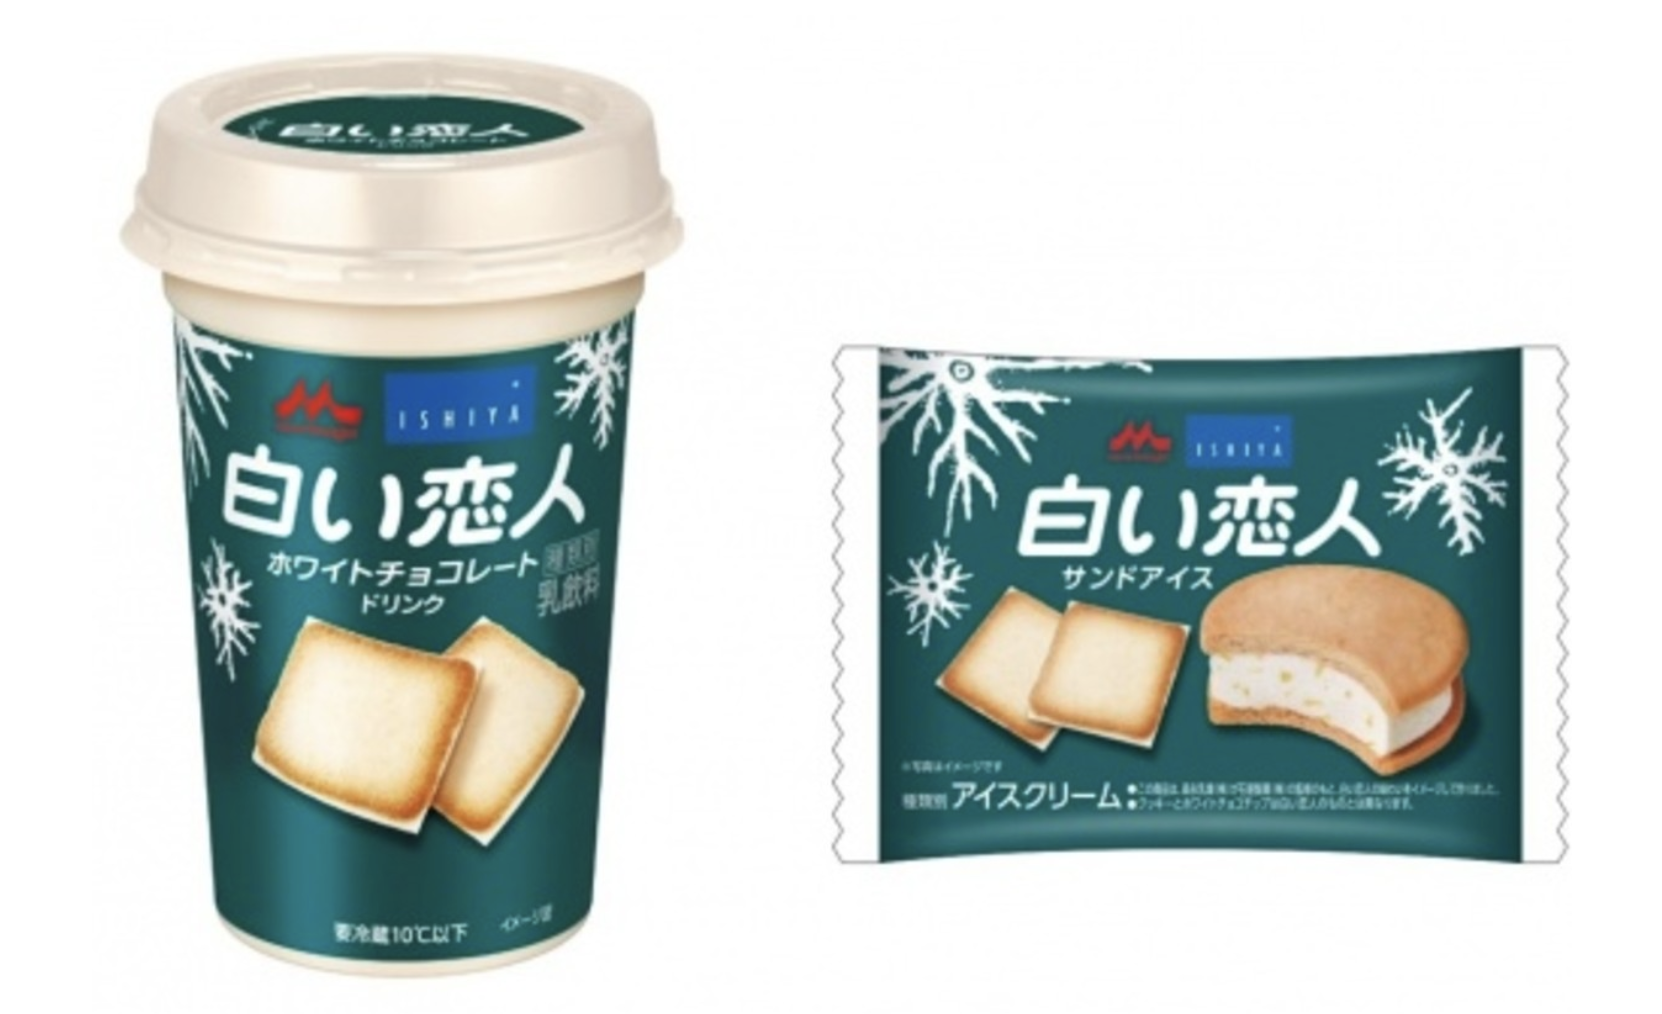 Hokkaido's Popular White Lover Cookies Turned Into Sweet Drinks And Ice Cream Sandwiches photo